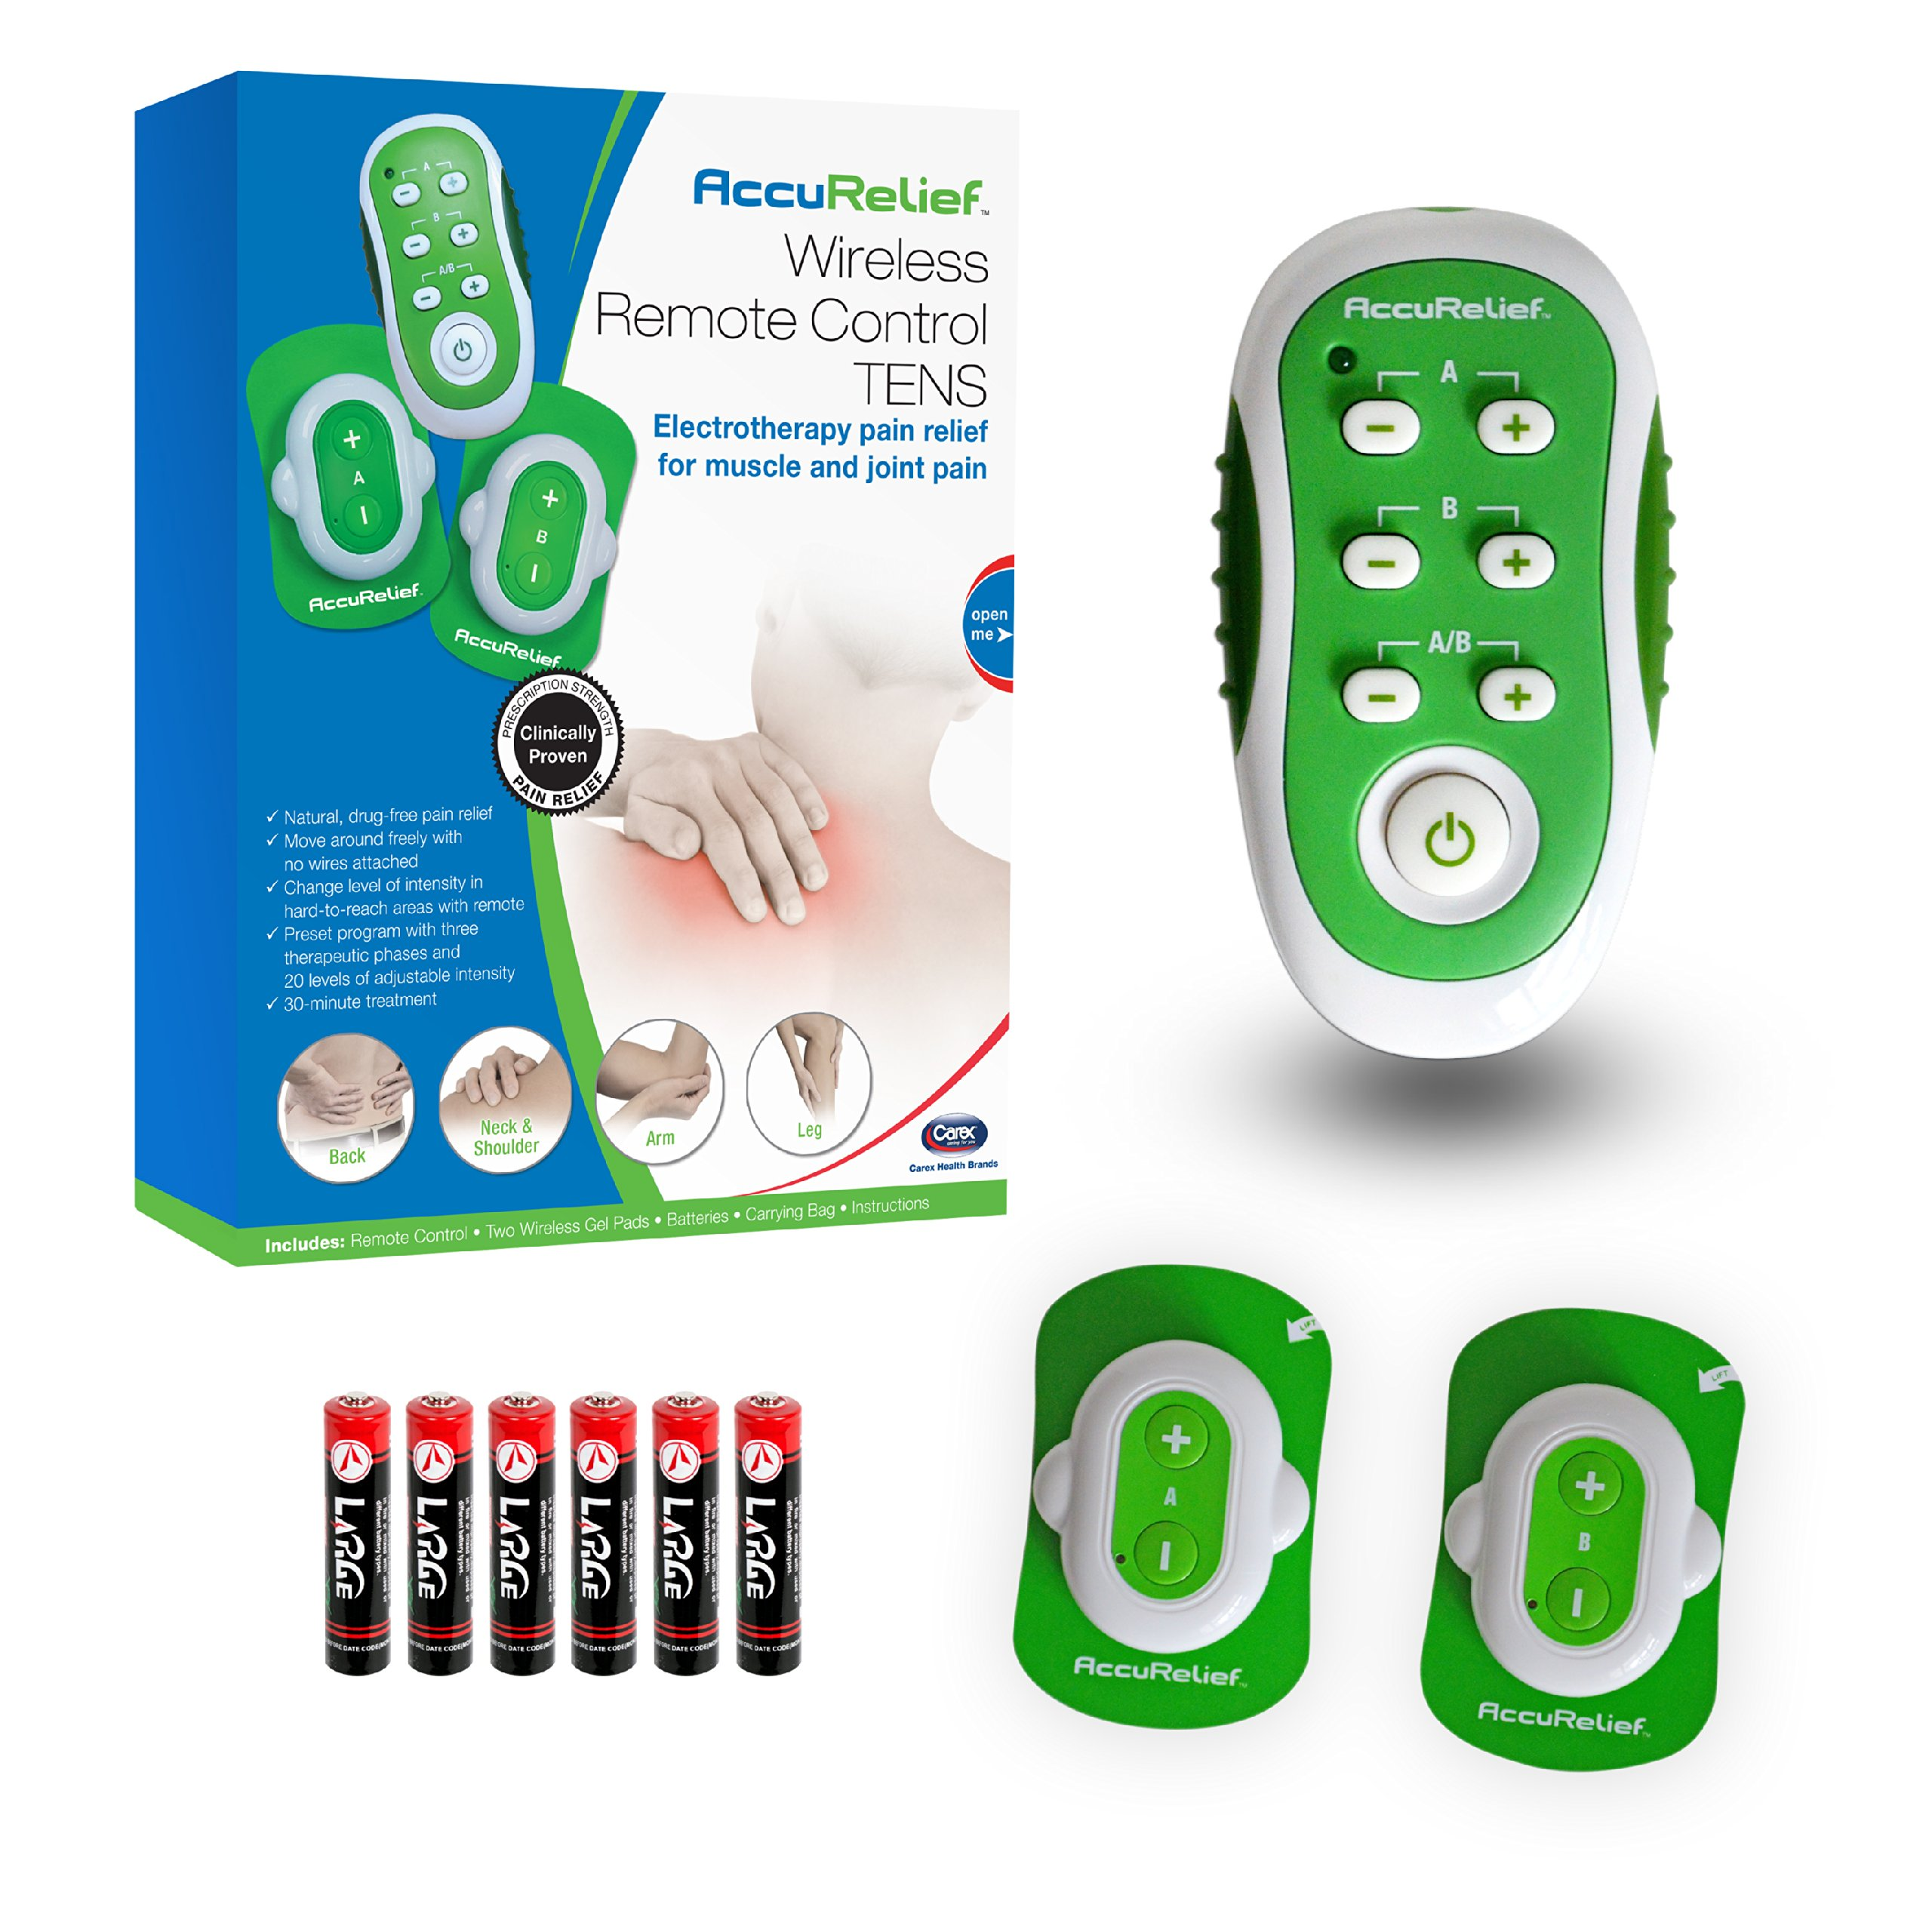 AccuRelief Wireless Remote Control TENS Pain Relief Device, Includes Batteries and a Draw-String Carrying Bag